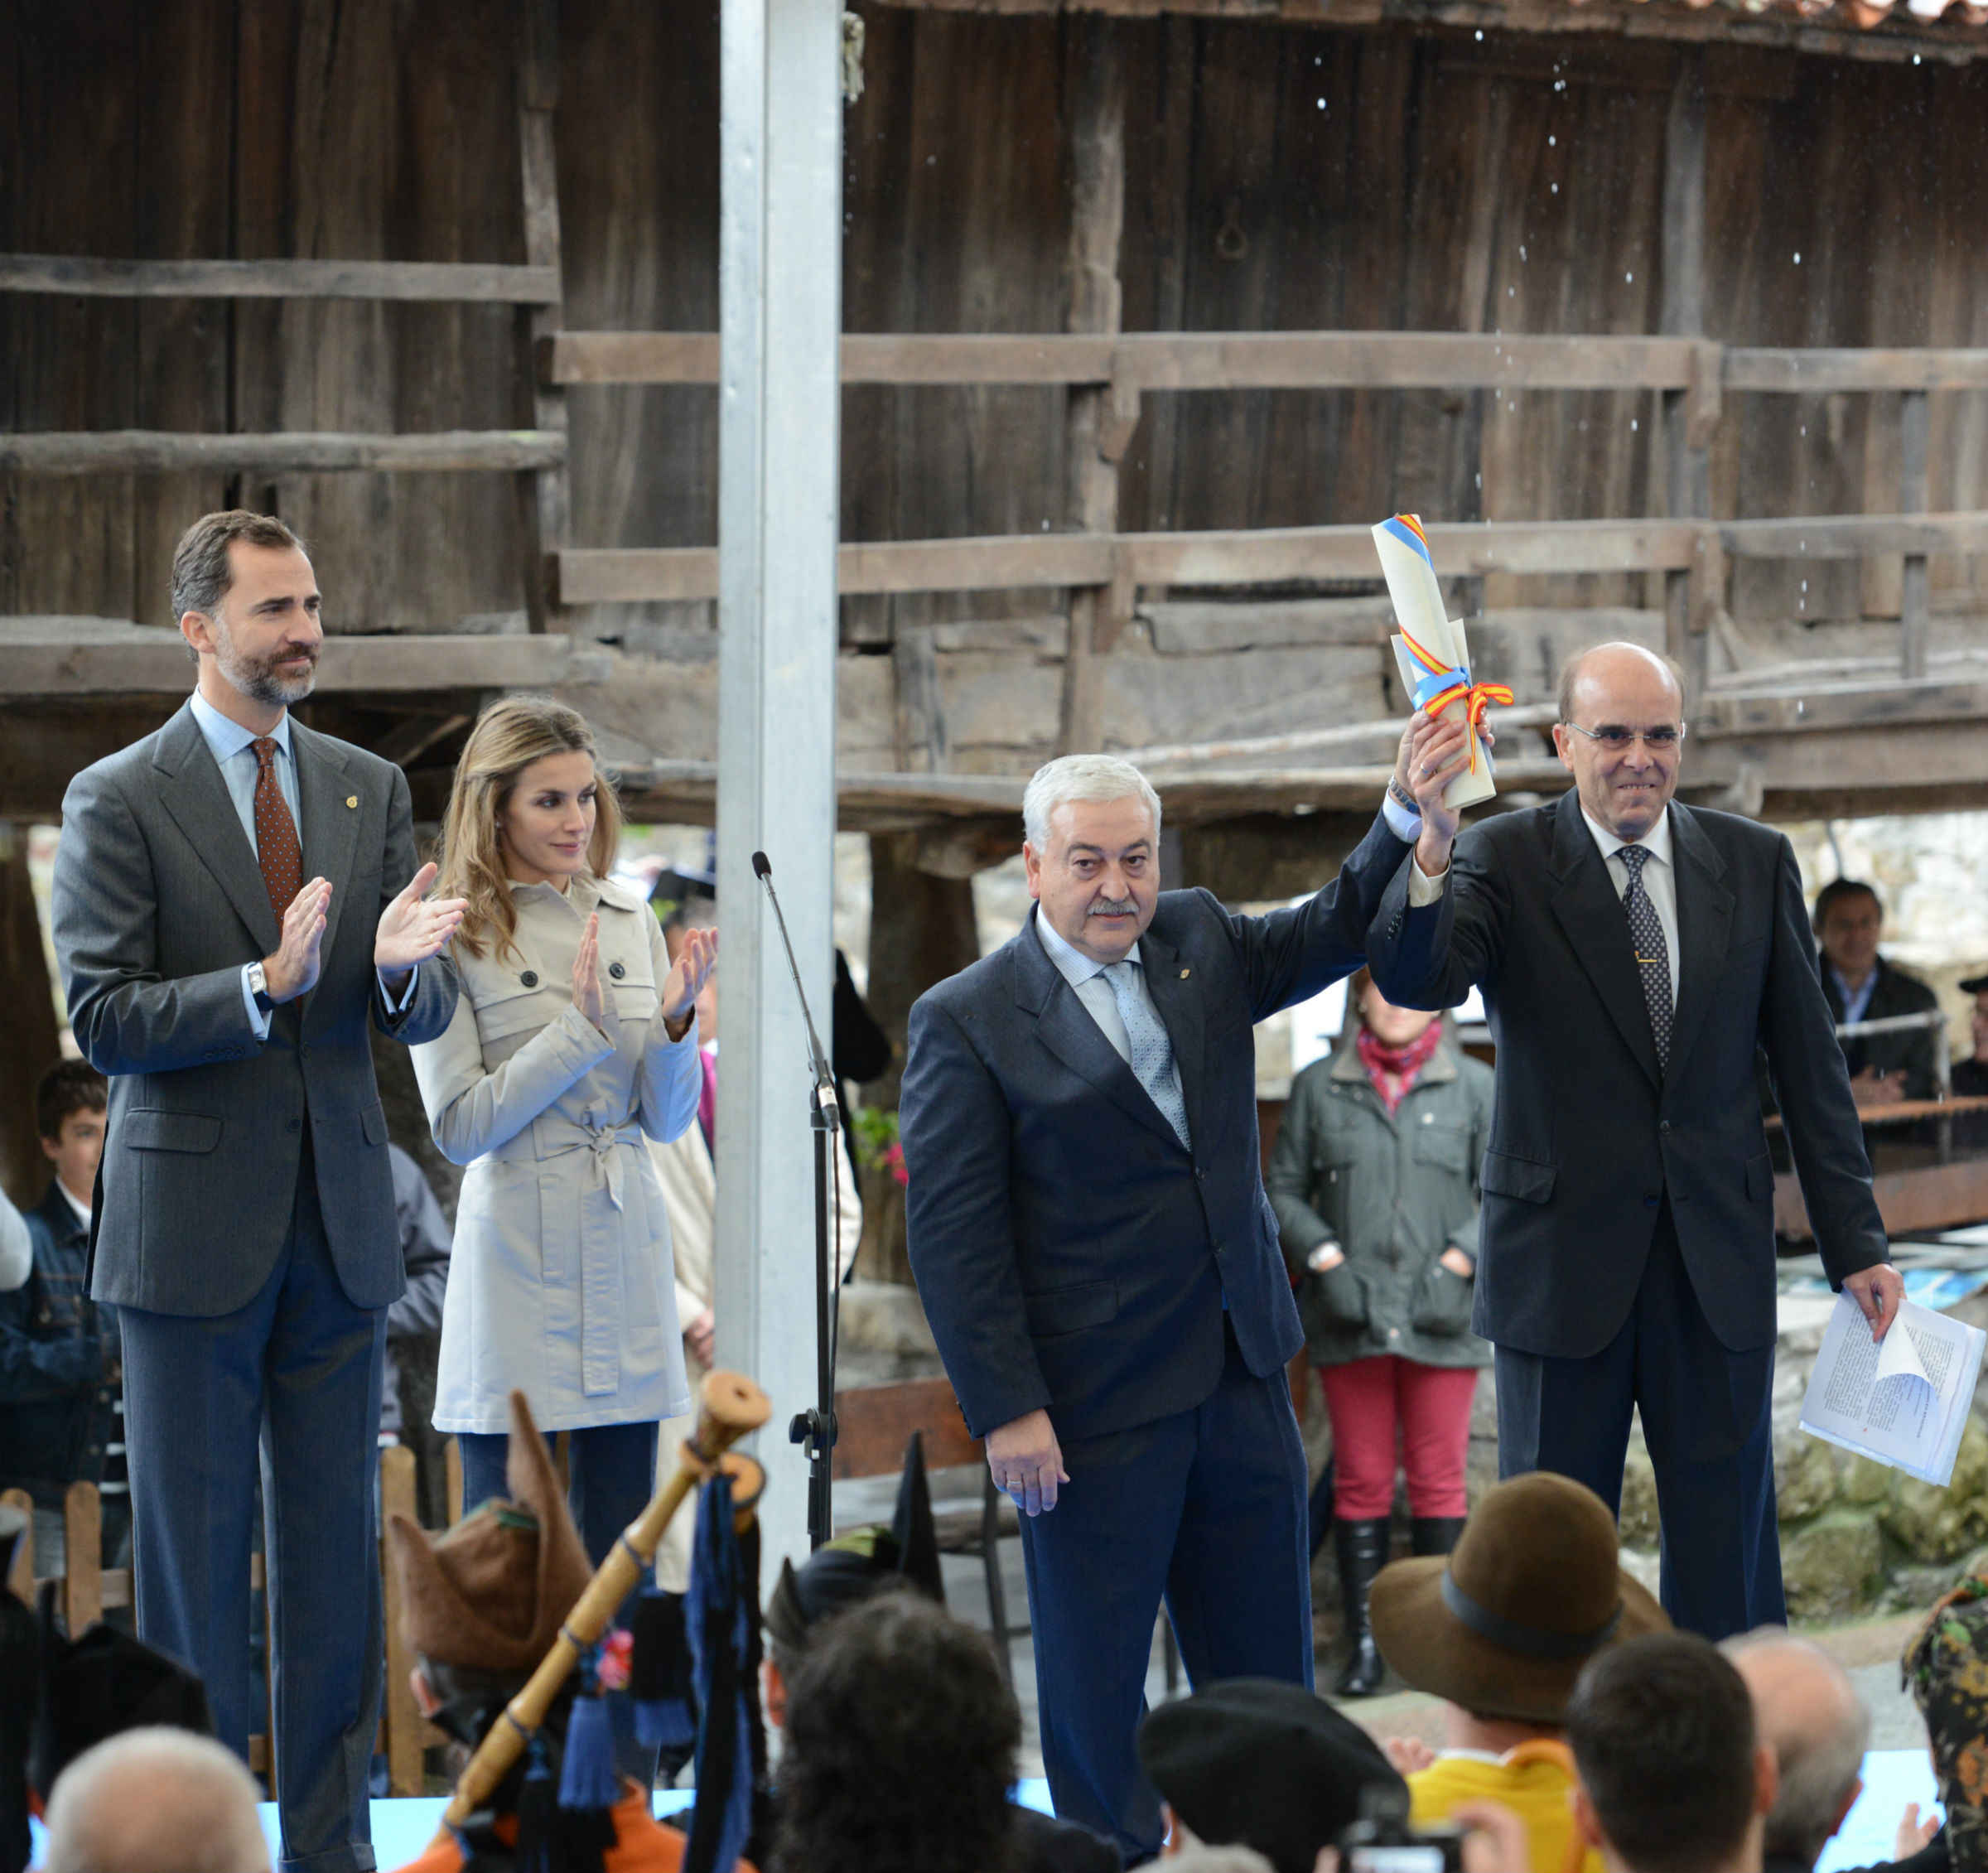 Bueño, Exemplary Town of Asturias Award